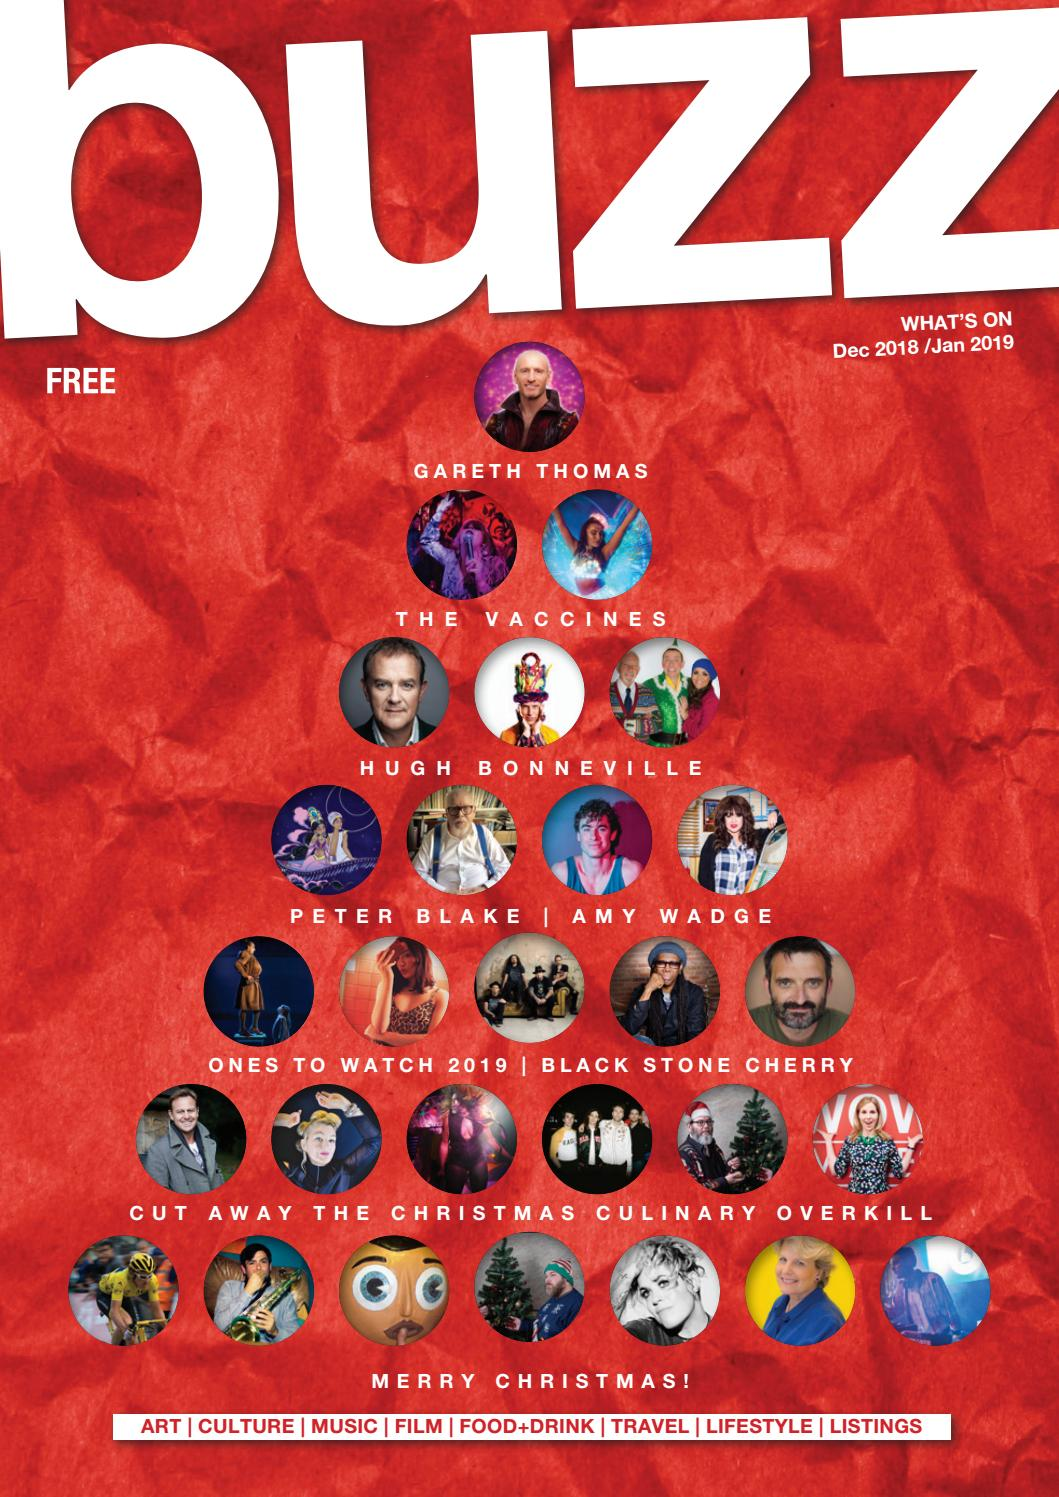 Buzz Magazine - December 2018/January 2019 by Buzz Magazine